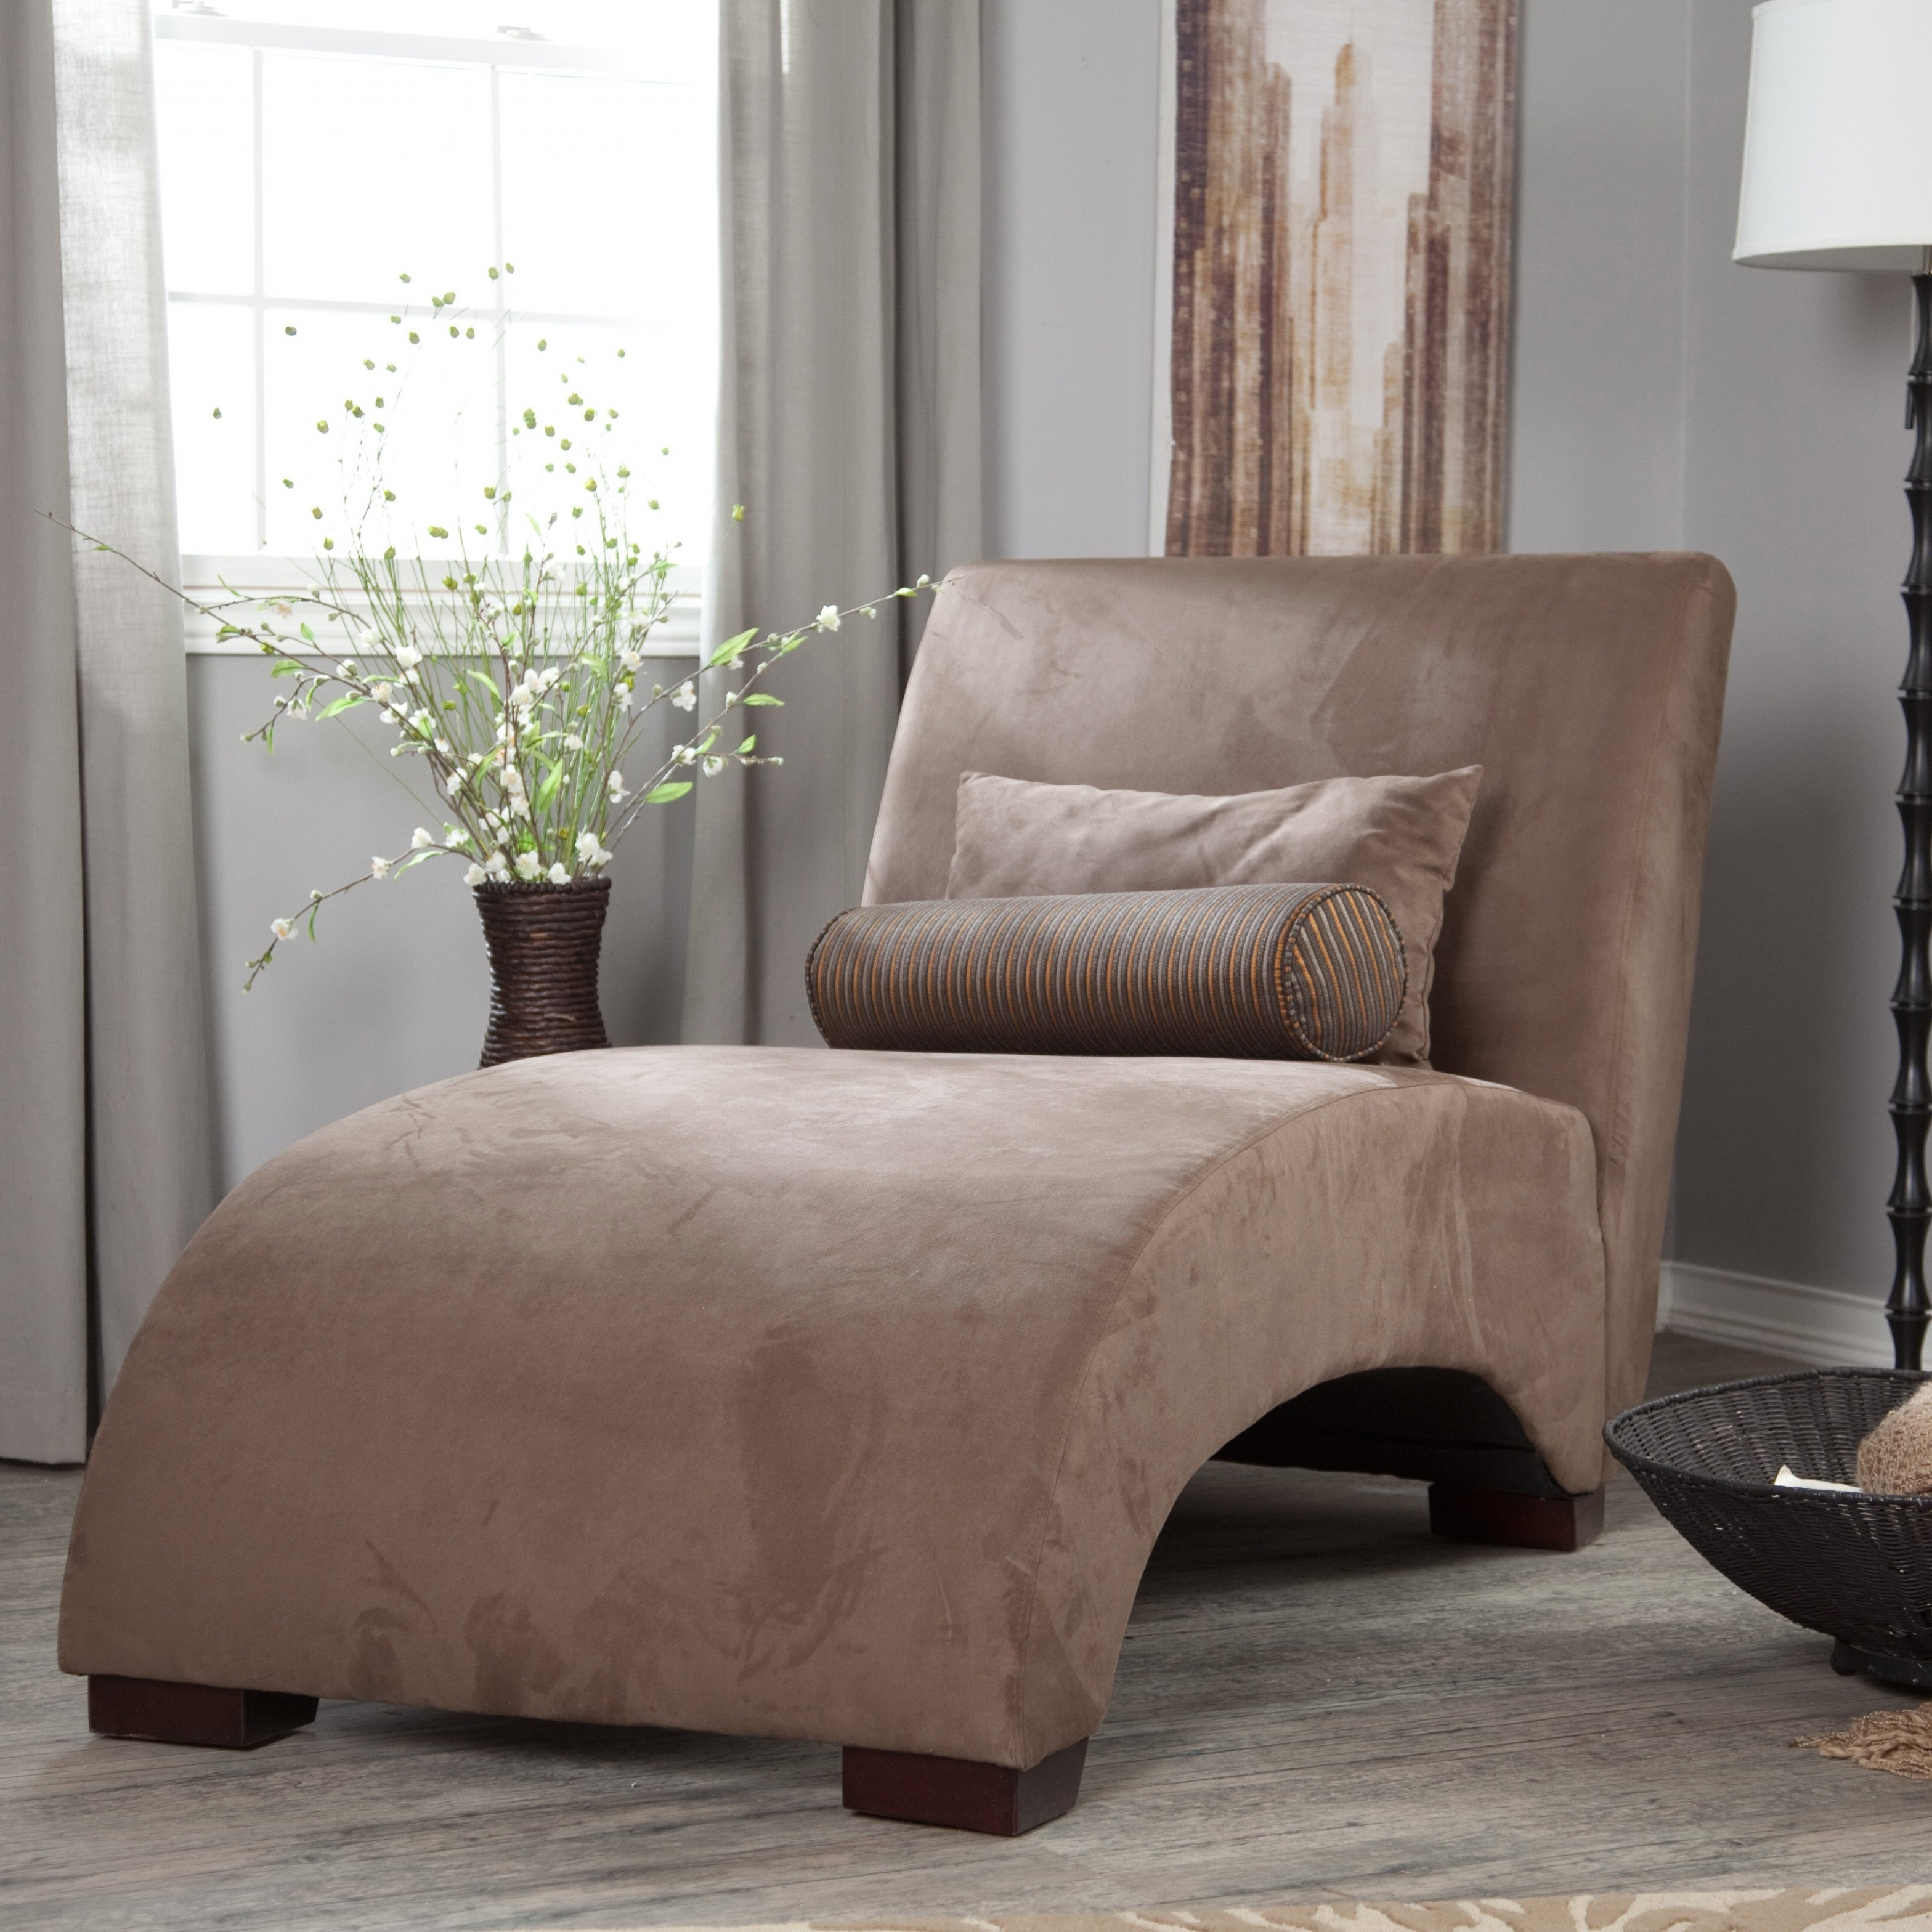 Well Known Narrow Chaise Lounge Chairs Within Home Decor: Chairs (View 8 of 15)